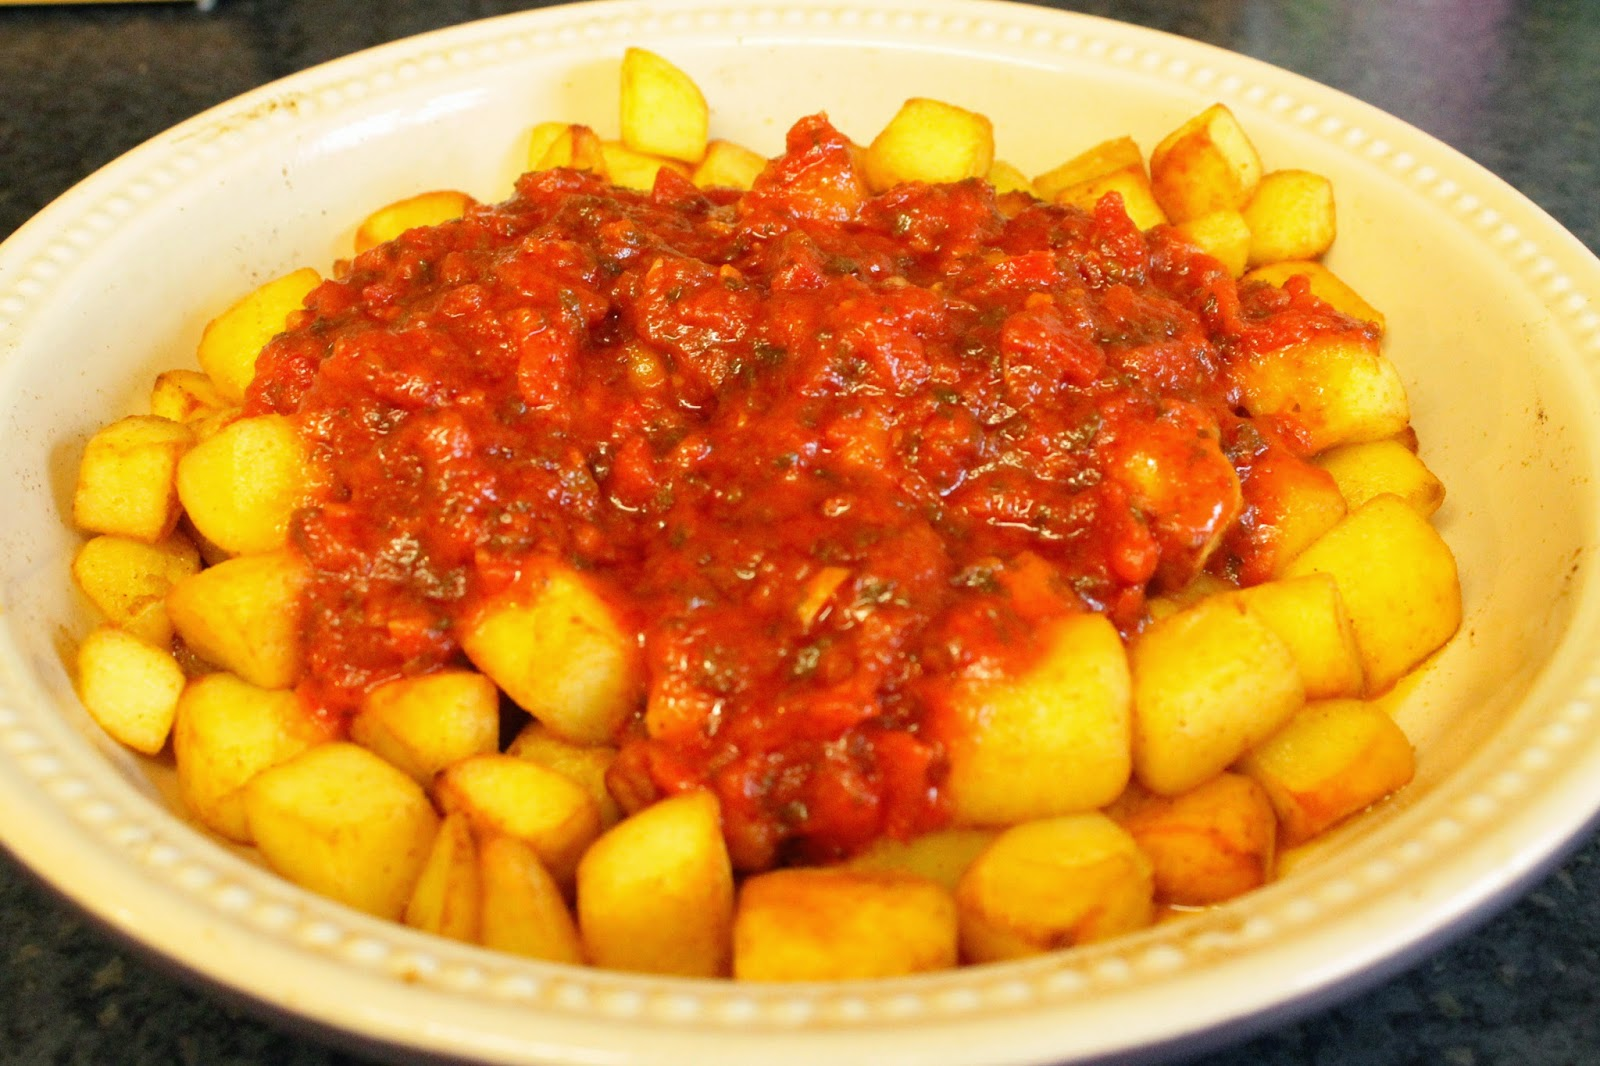 Cheats patatas bravas